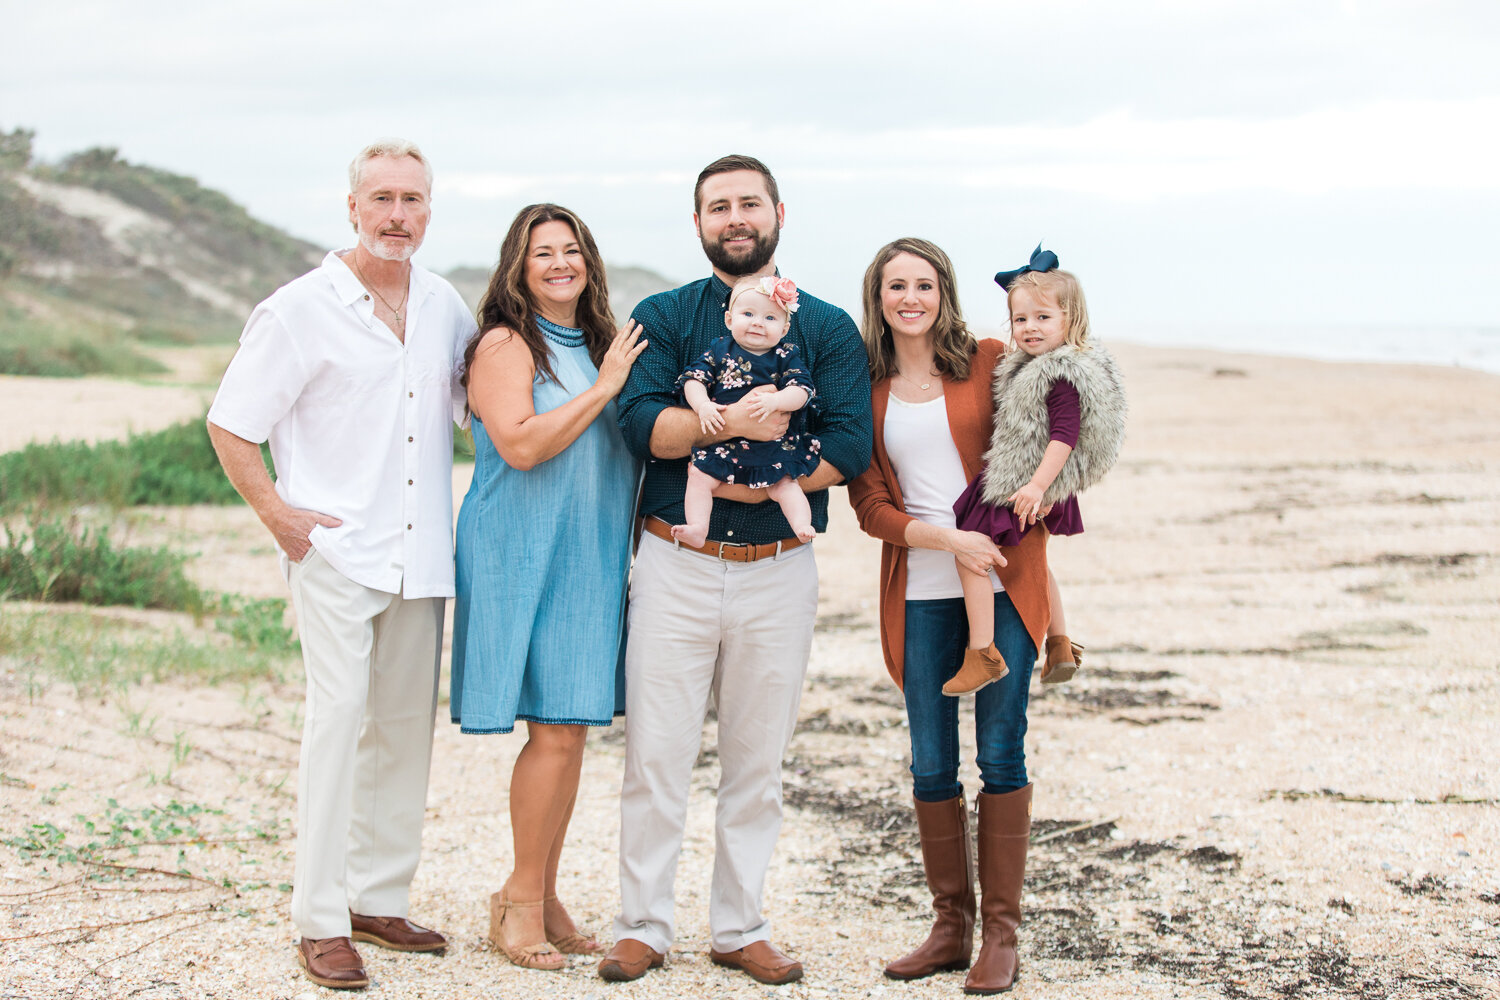 extended family photoshoot at the beach in guana preserve